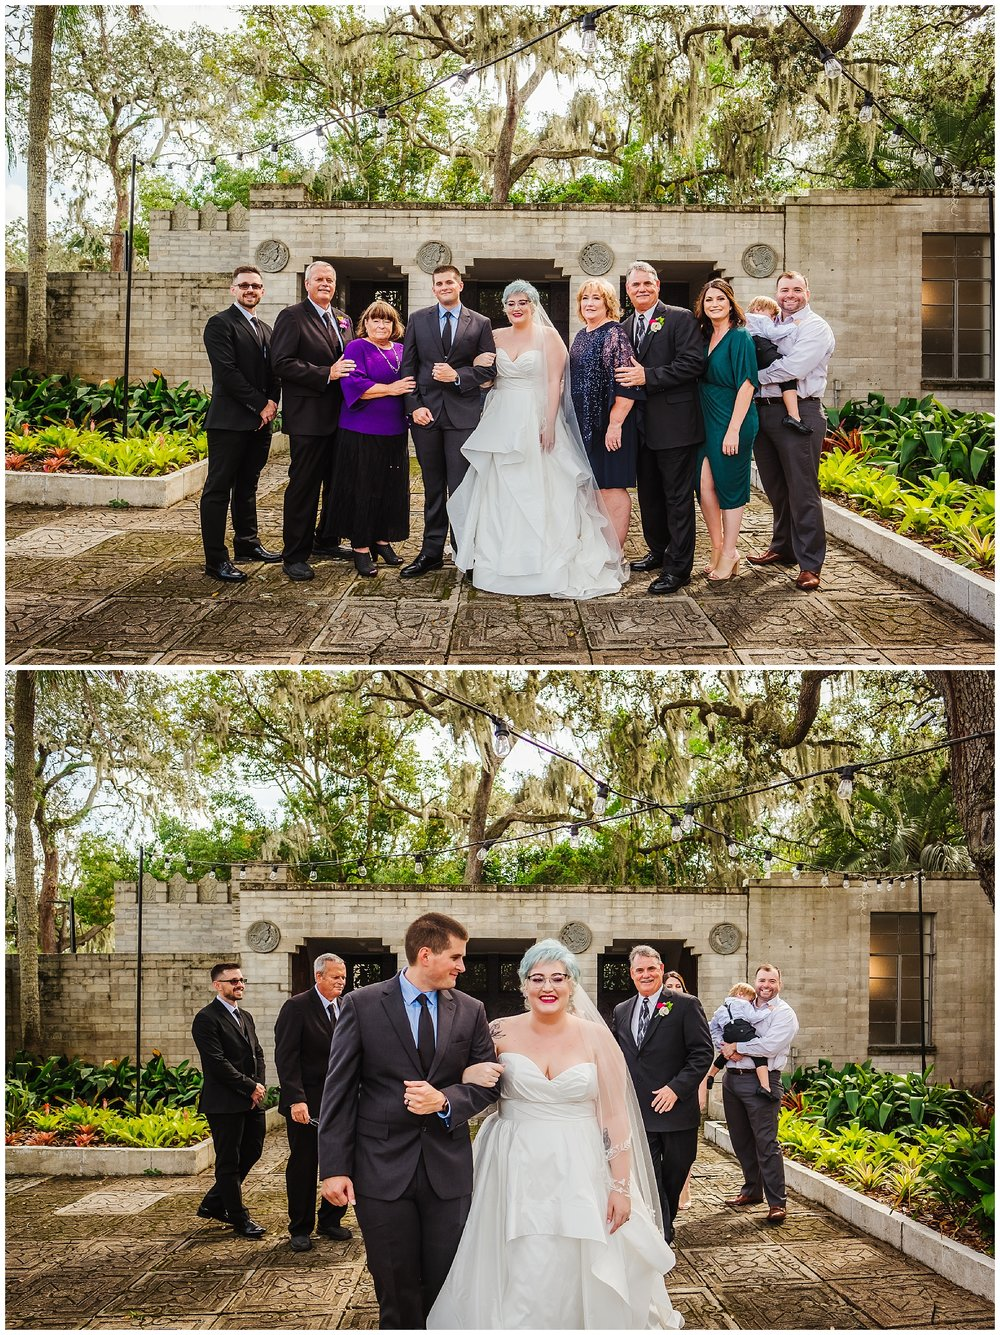 colorful-disney-elopement-micro-wedding-maitland-arts-center-orlando-photographer_0150.jpg